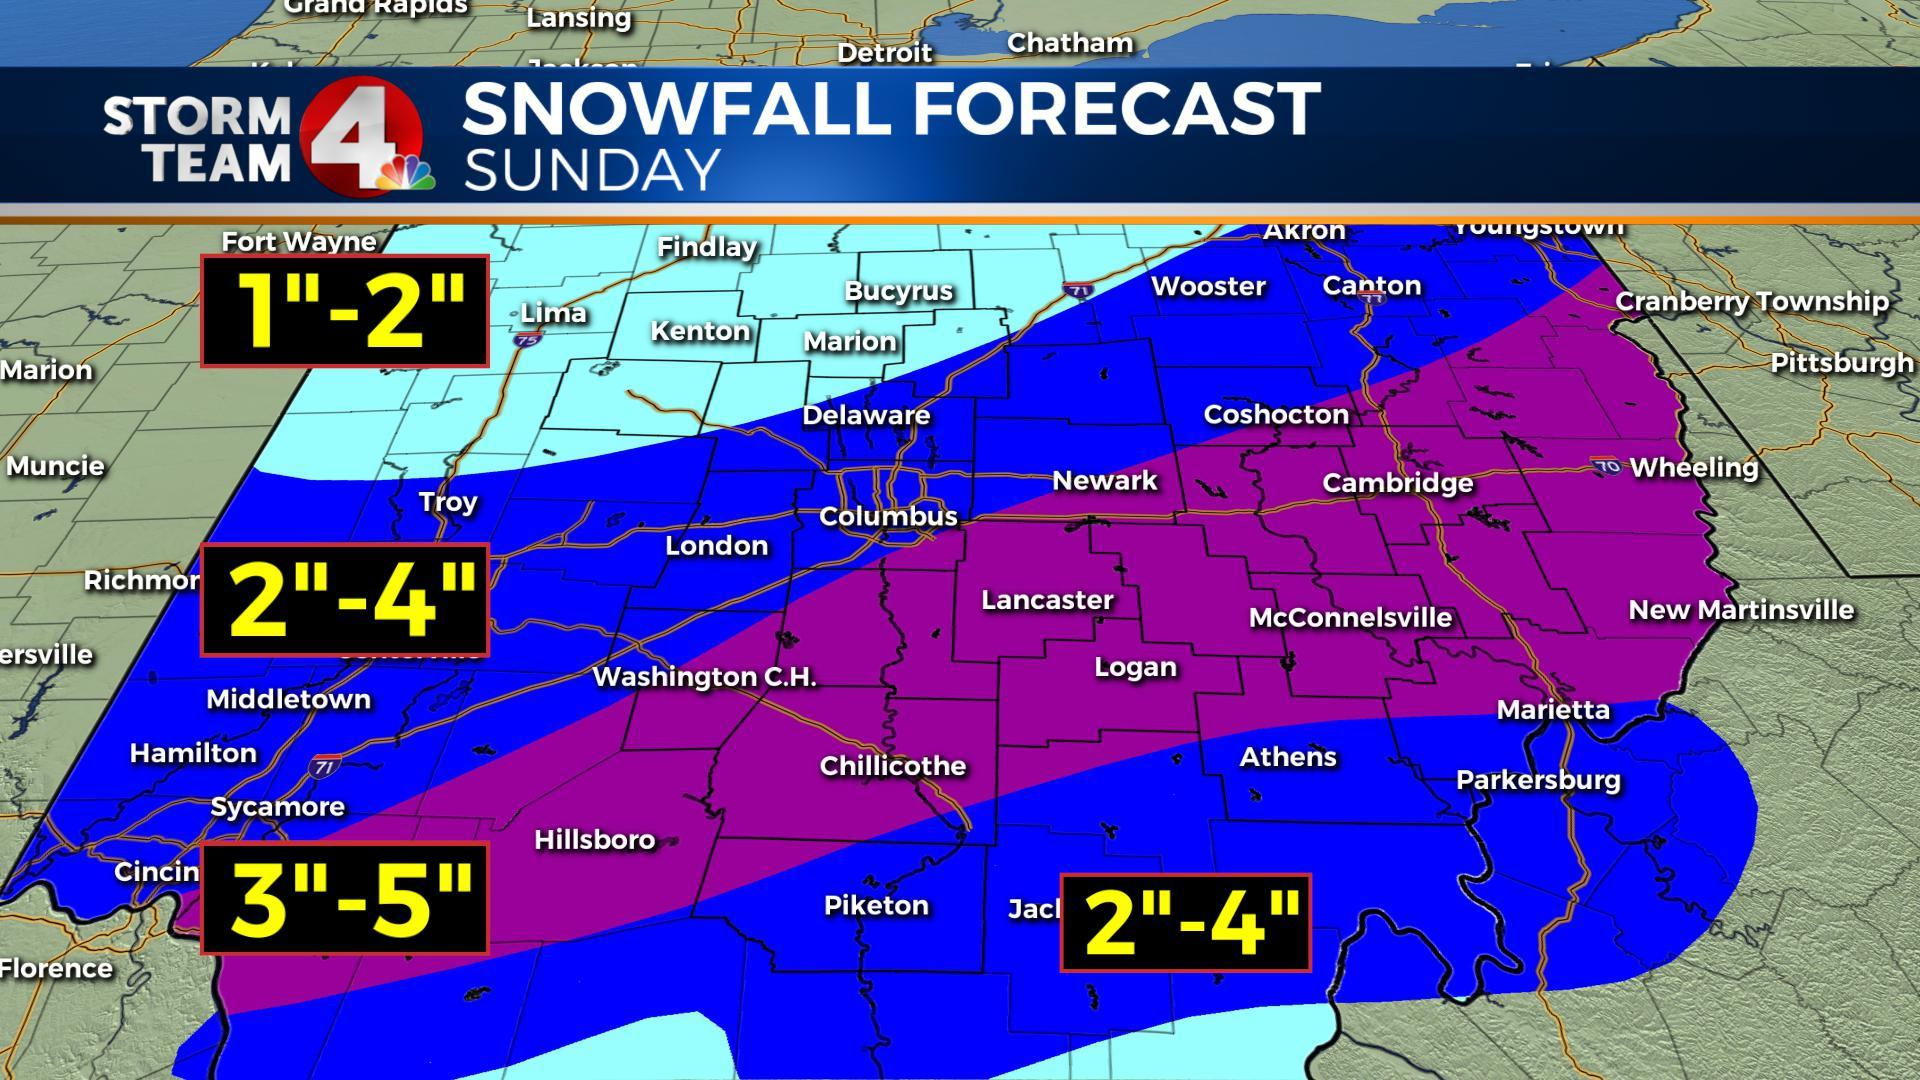 March brings in a possible record snowfall in 1st weekend